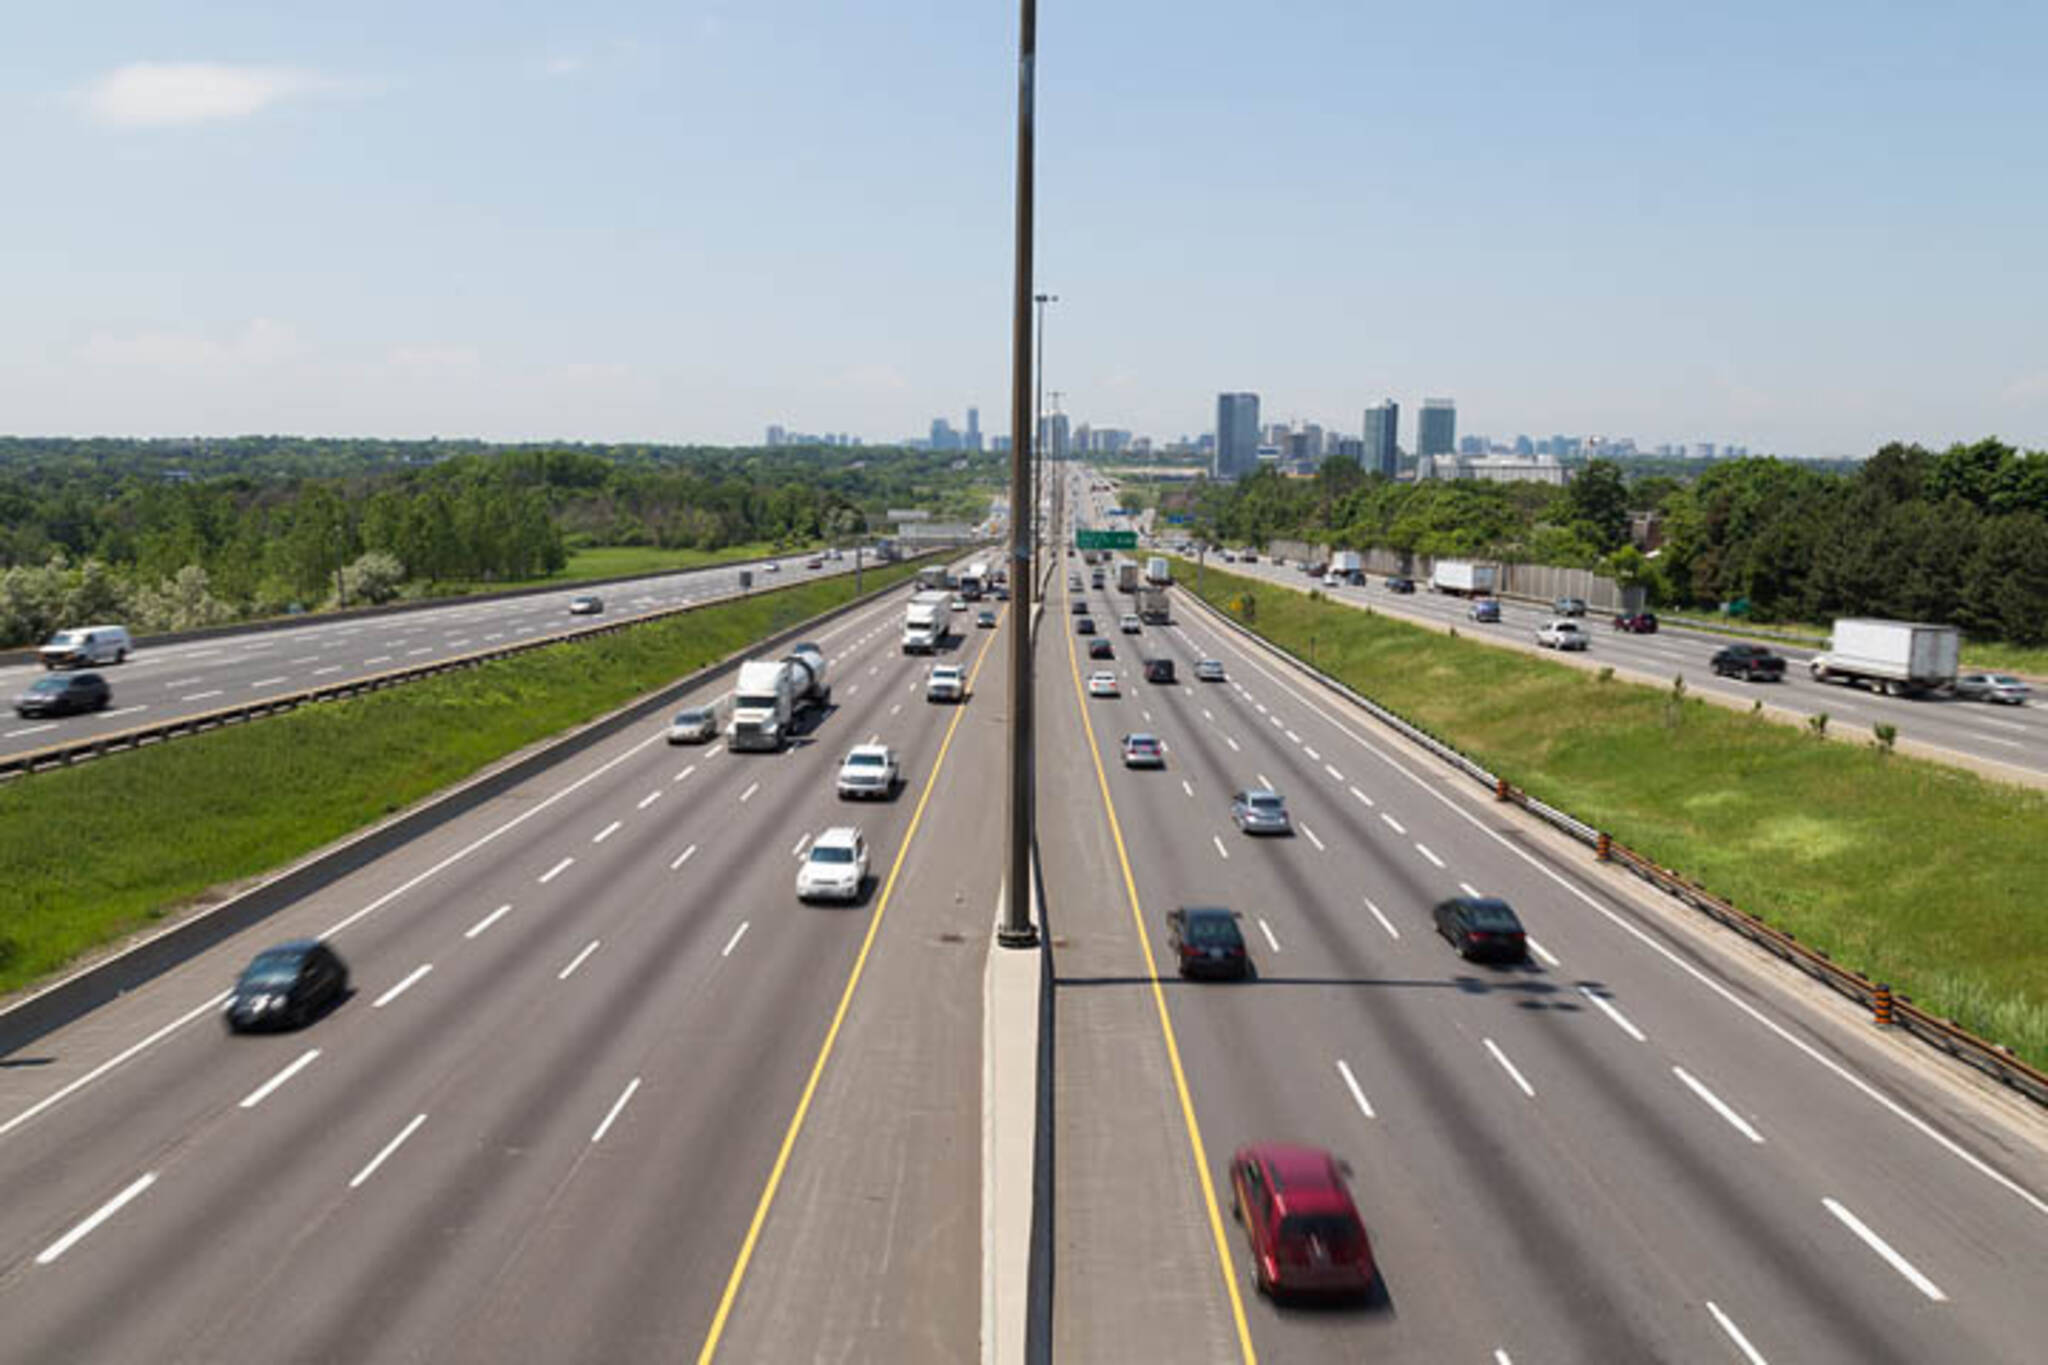 highway 401 expansion